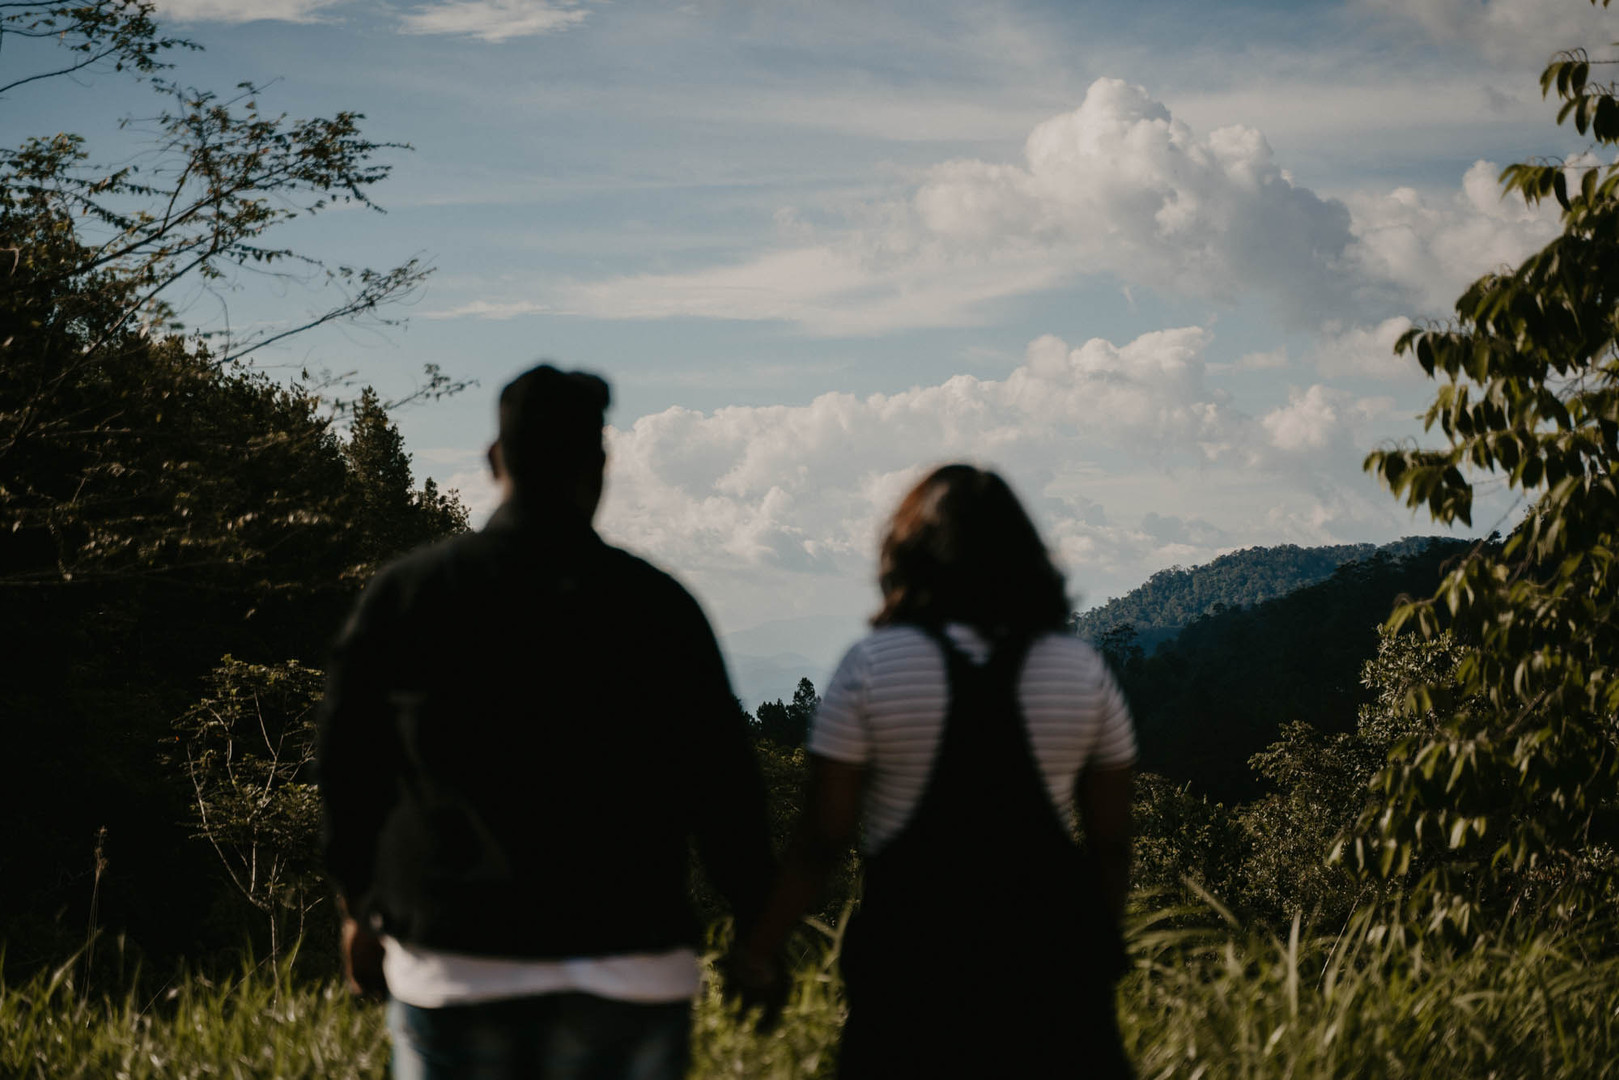 Inspired by {Catherine & Kevin}    Best weekend together:  The best weekend together was when we went up to Genting Highlands to take a ride on the cable car and then just hanging around, taking pictures. We even cooked and did a mini car picnic. It was simple but it was everything for us because time spent together is precious especially when we have busy schedules.    Favourite Memory Together: Late night car drives together, talking about anything and everything, we sing songs in the car. Getting ice cream from McDonalds and enjoying our alone time with sweet dessert. Dates at the mall, I would dare him to do things which he was never afraid of doing, for example, saying 'hello' to 10 random strangers or talking to a mannequin.    Insider jokes that only two of you understand: Once, we were coming back from the mall and we were listening to some music. So, the song 'I Can Feel Your Heartbeat' popped up and I was having a really bad tummy ache. I was leaning on his shoulder. So, while the song was playing, I had to let go some air and it smelled so terrible that he wind down all the windows and was just trying to gasp for clean air! Lol! From that moment, whenever the song pops up, he would look at me and give me the look of asking me if I was gonna silent attack him another time!